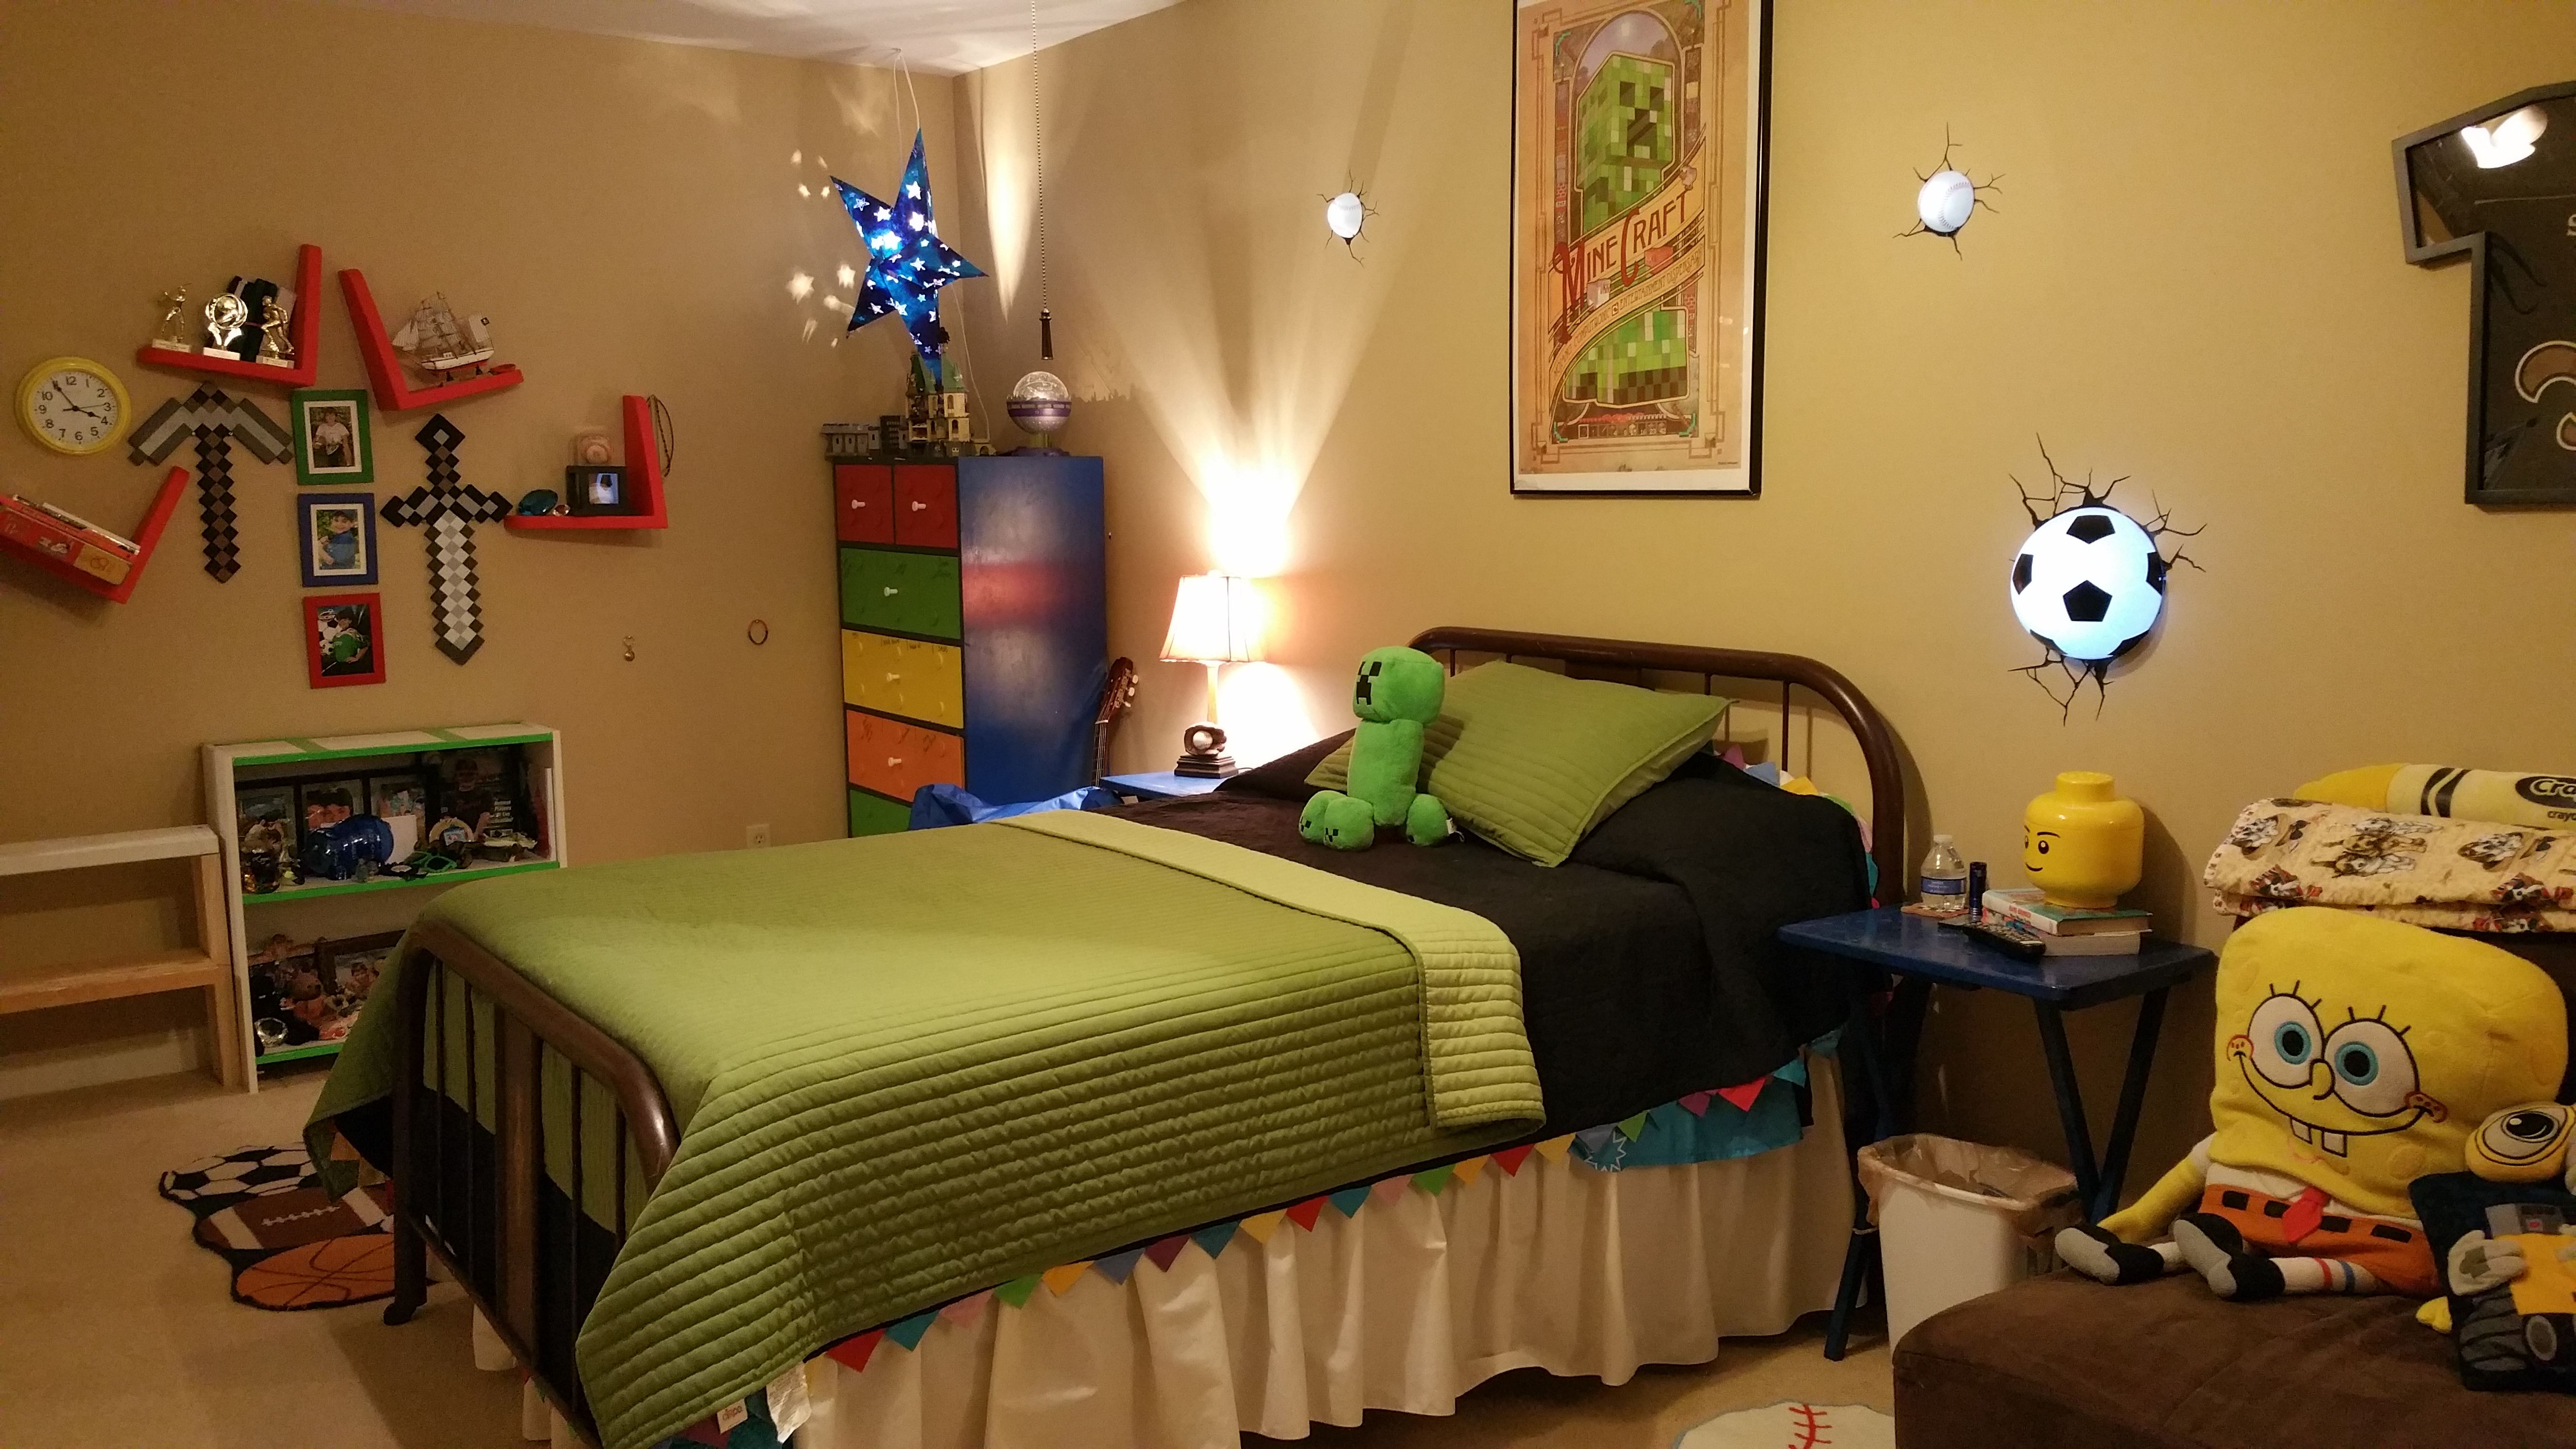 10 year old boys room with sports and minecraft theme | My ...